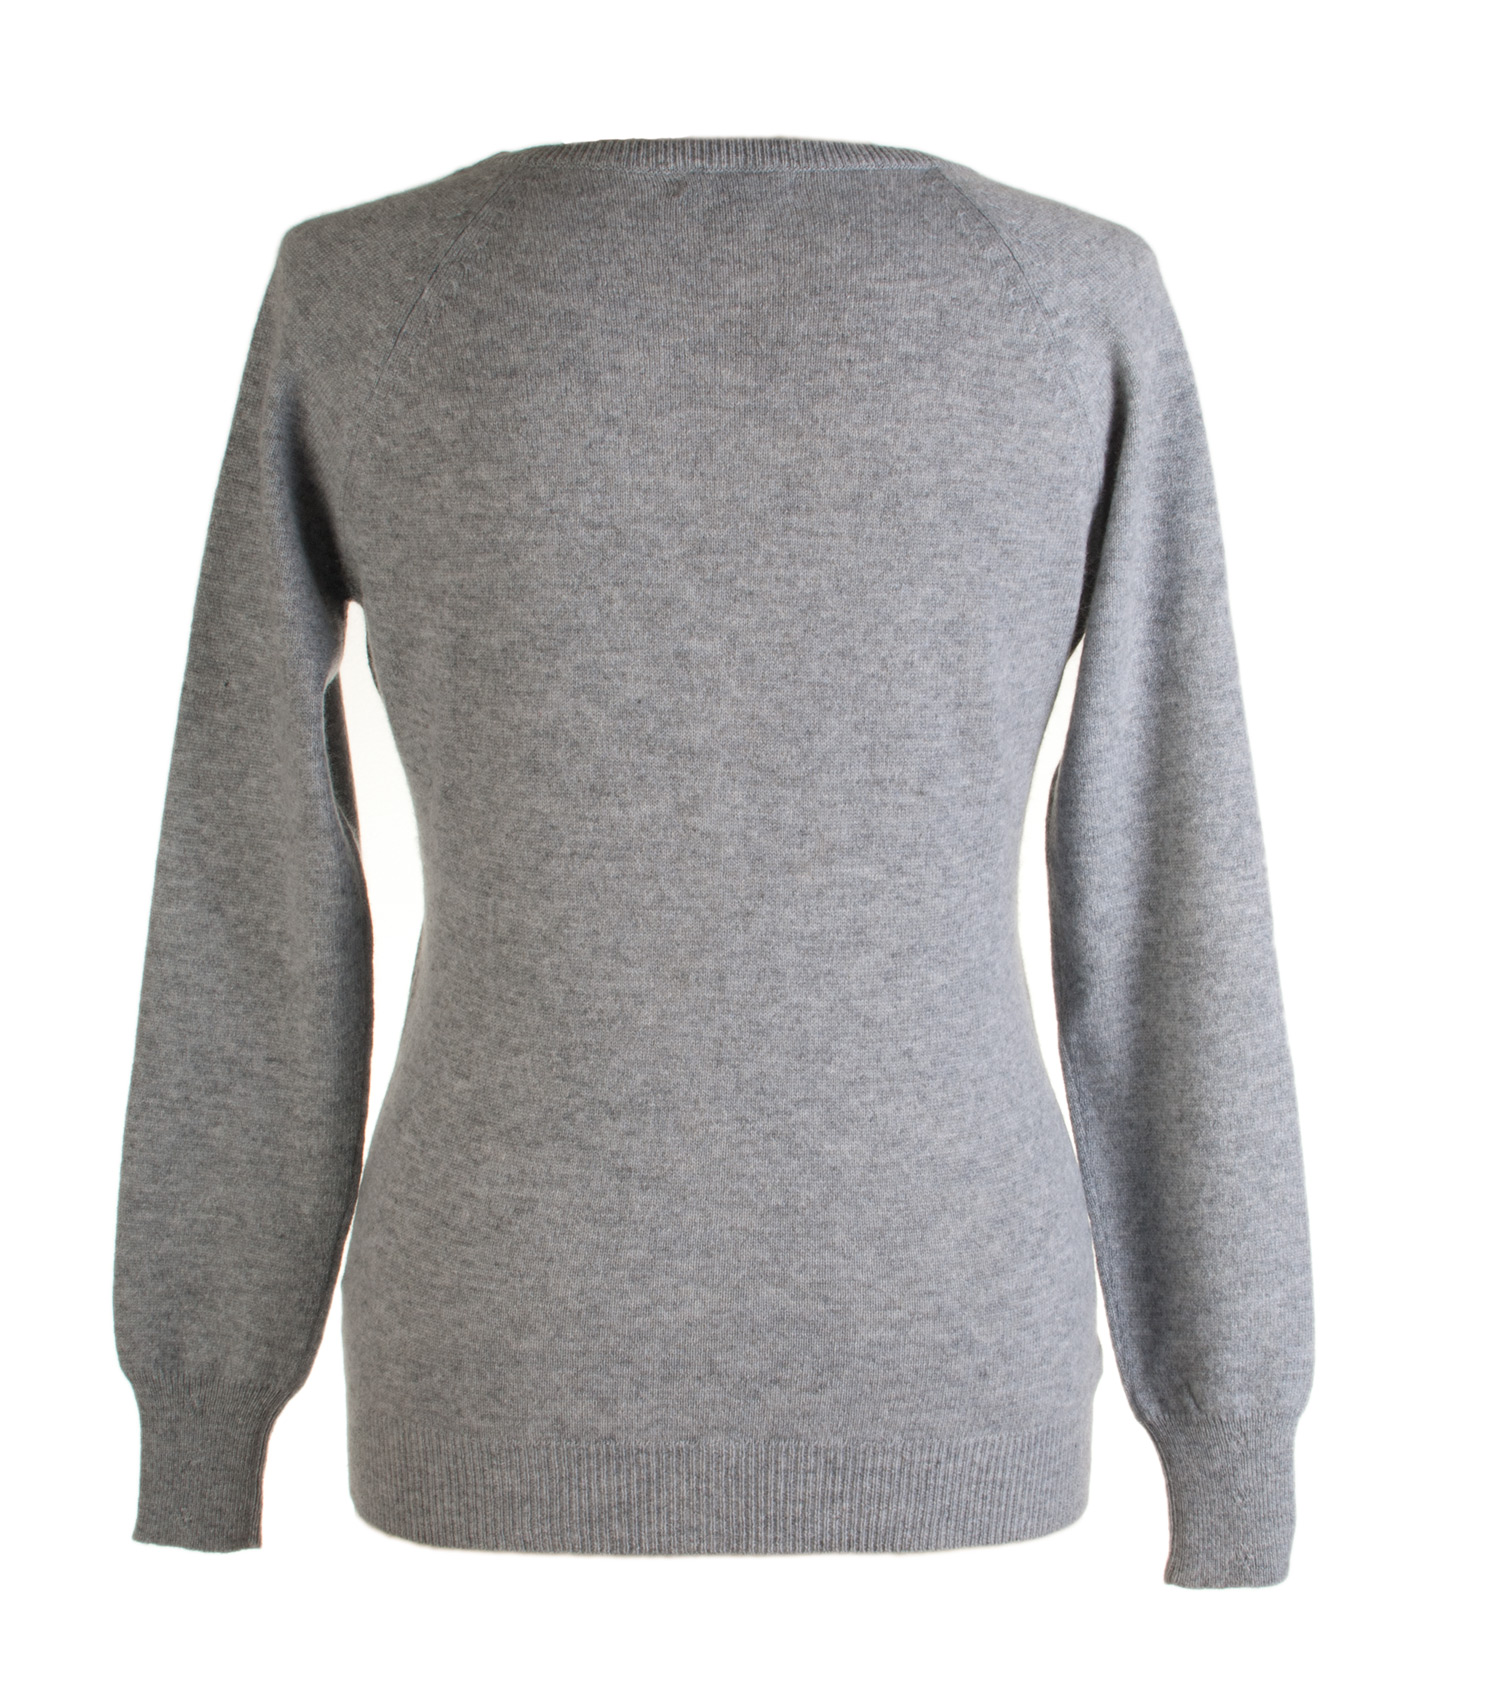 Ladies Cashmere Vneck Cardigan